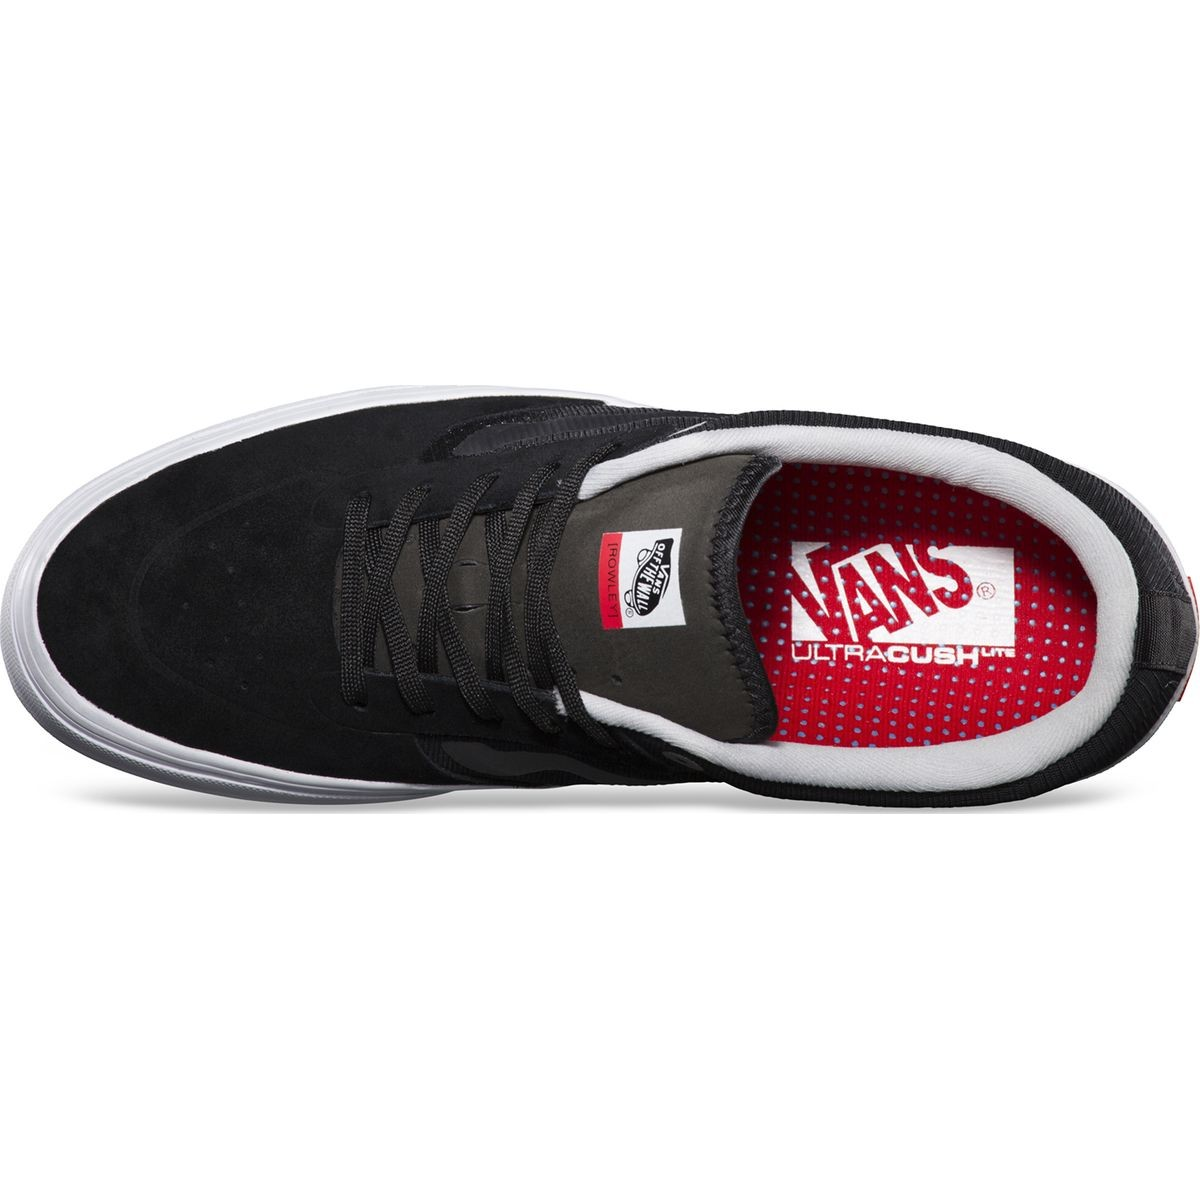 bf805ea0b3 Vans Rowley Pro Lite Shoes - Black - 13.0